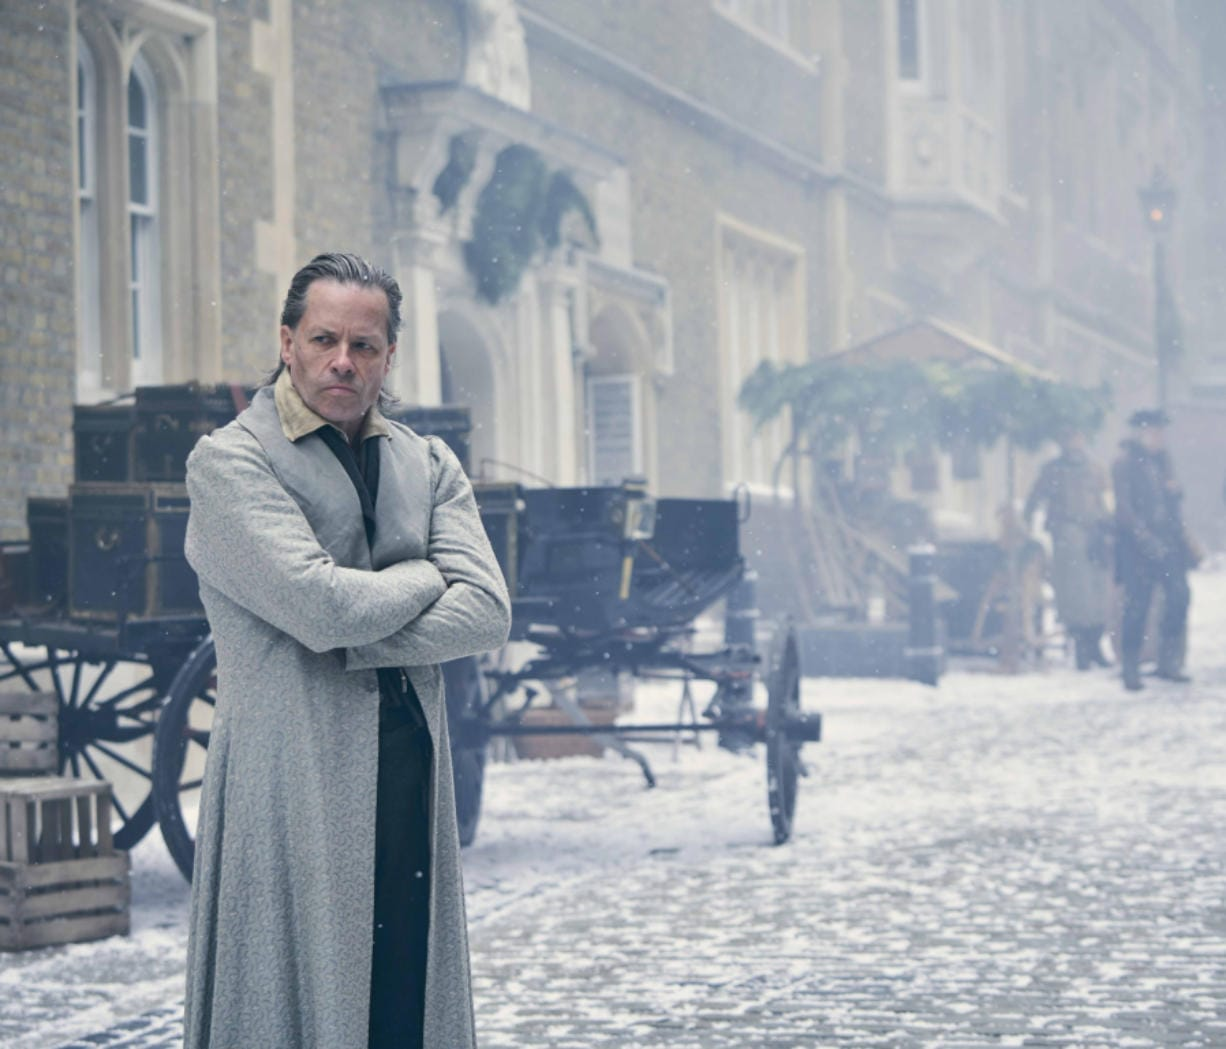 """England-born, Australia-raised actor Guy Pearce stars as Ebenezer Scrooge in FX's new version of Charles Dickens' classic, """"A Christmas Carol,"""" premiering Dec. 19."""